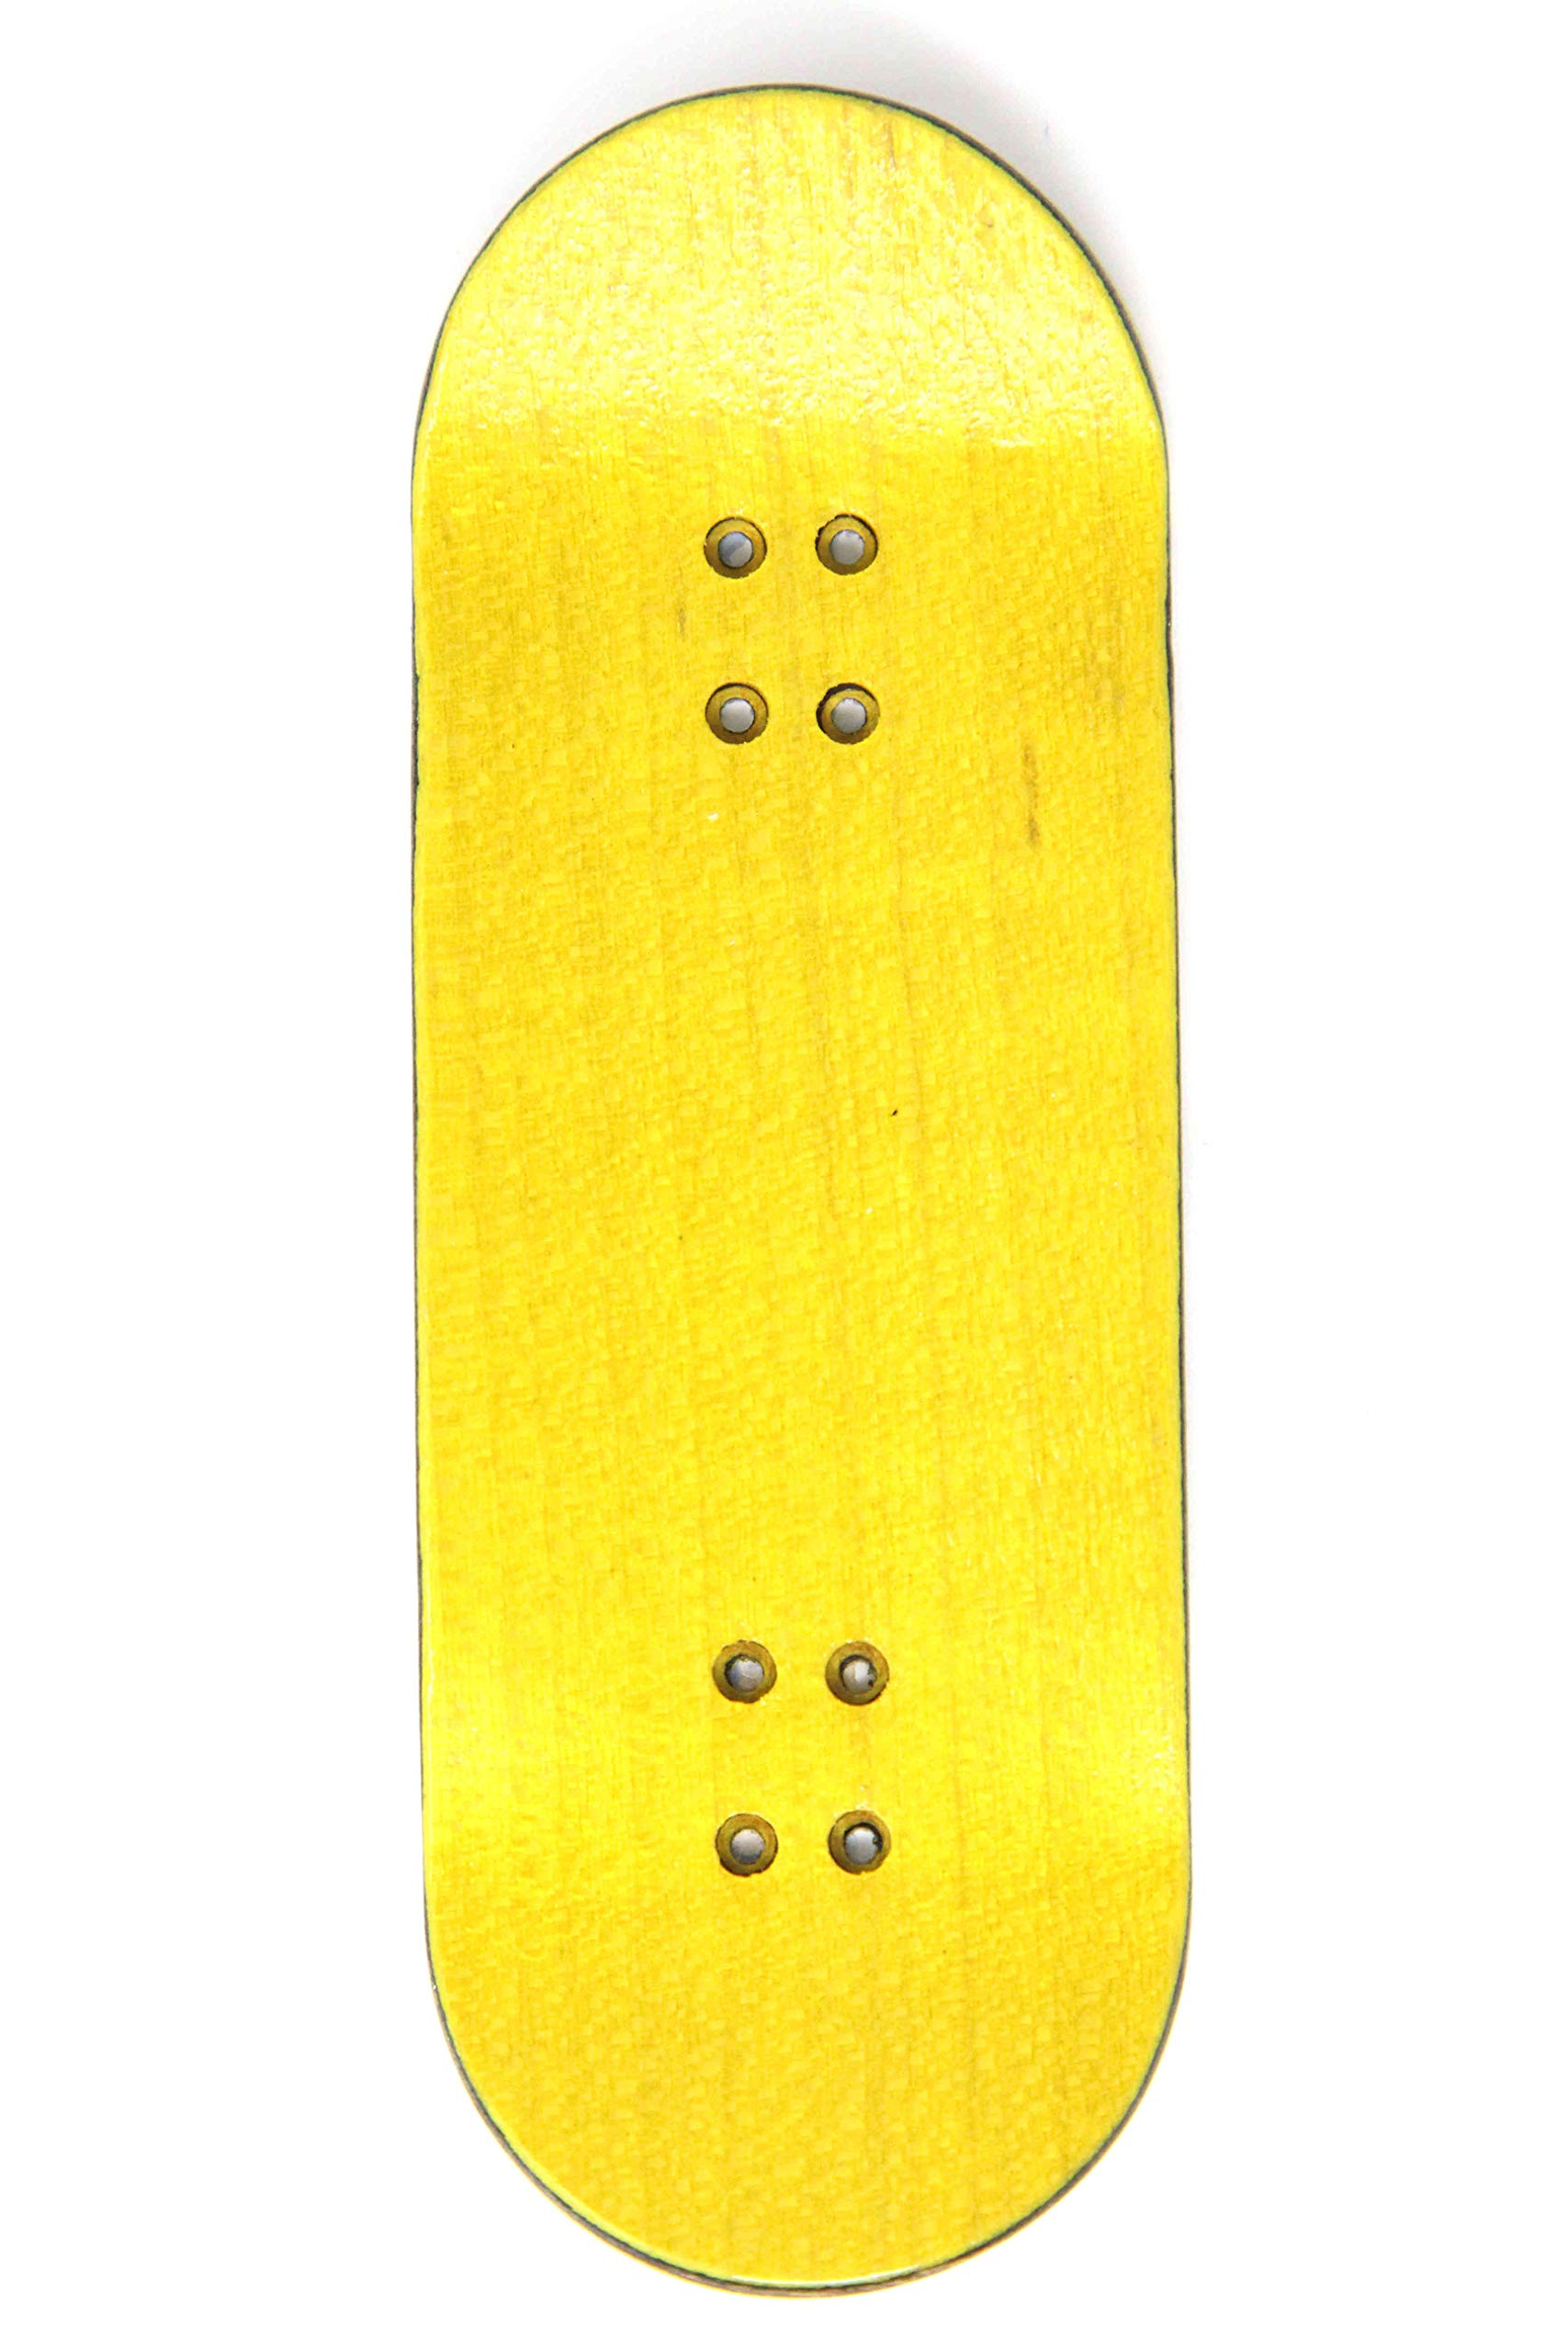 Skull Fingerboards Burning Man 34mm Complete Professional Wooden Fingerboard Mini Skateboard 5 PLY with CNC Bearing Wheels by Skull Fingerboards (Image #3)